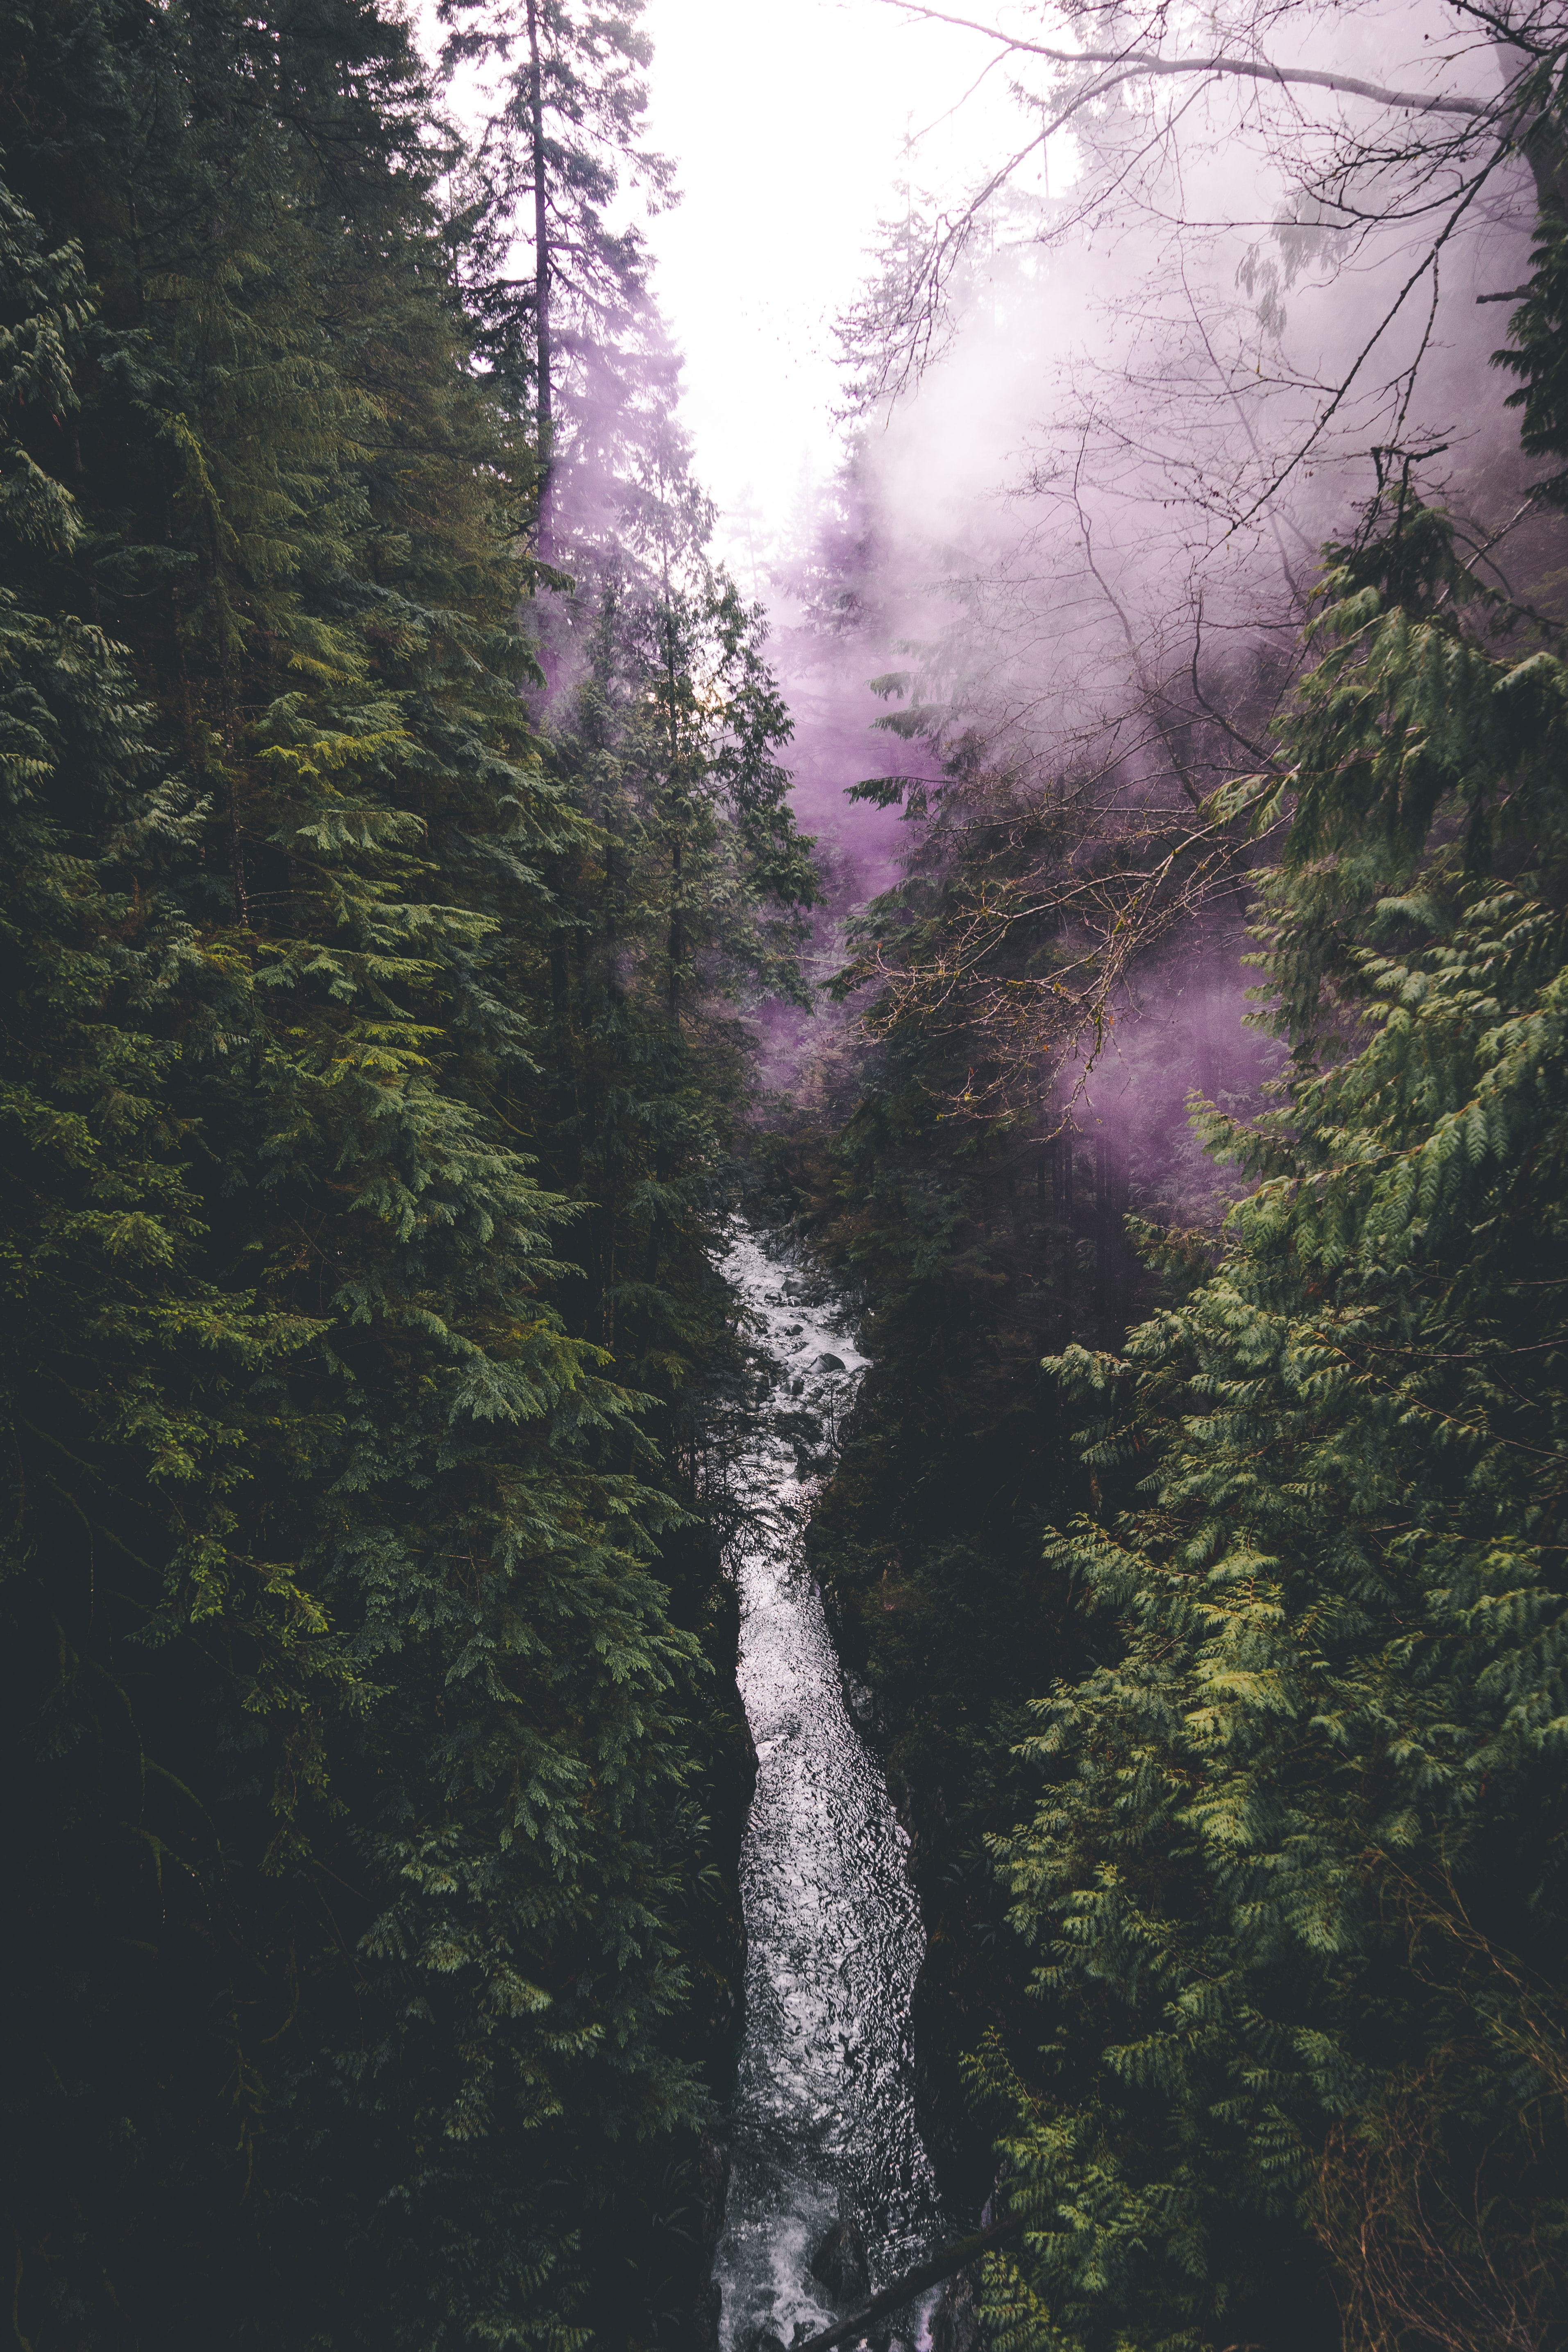 bird's-eye photography of river between birch trees with purple smoke